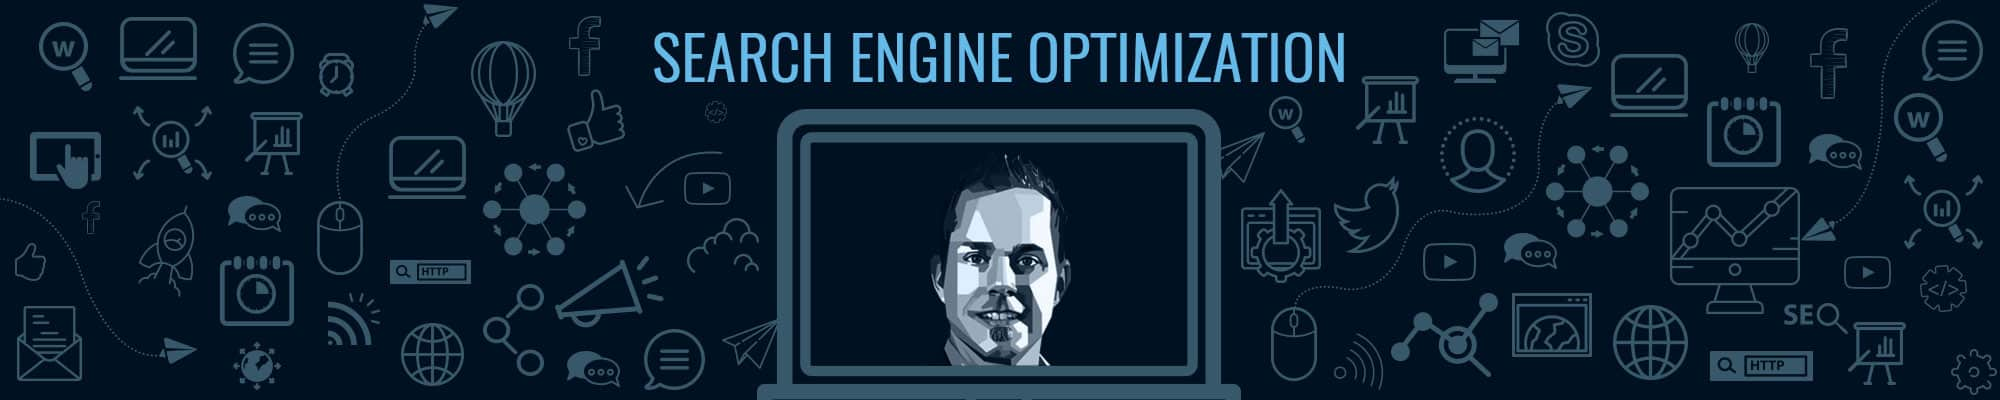 Search Enine Optimization Services | Hire Shane Barker for SEO consultation